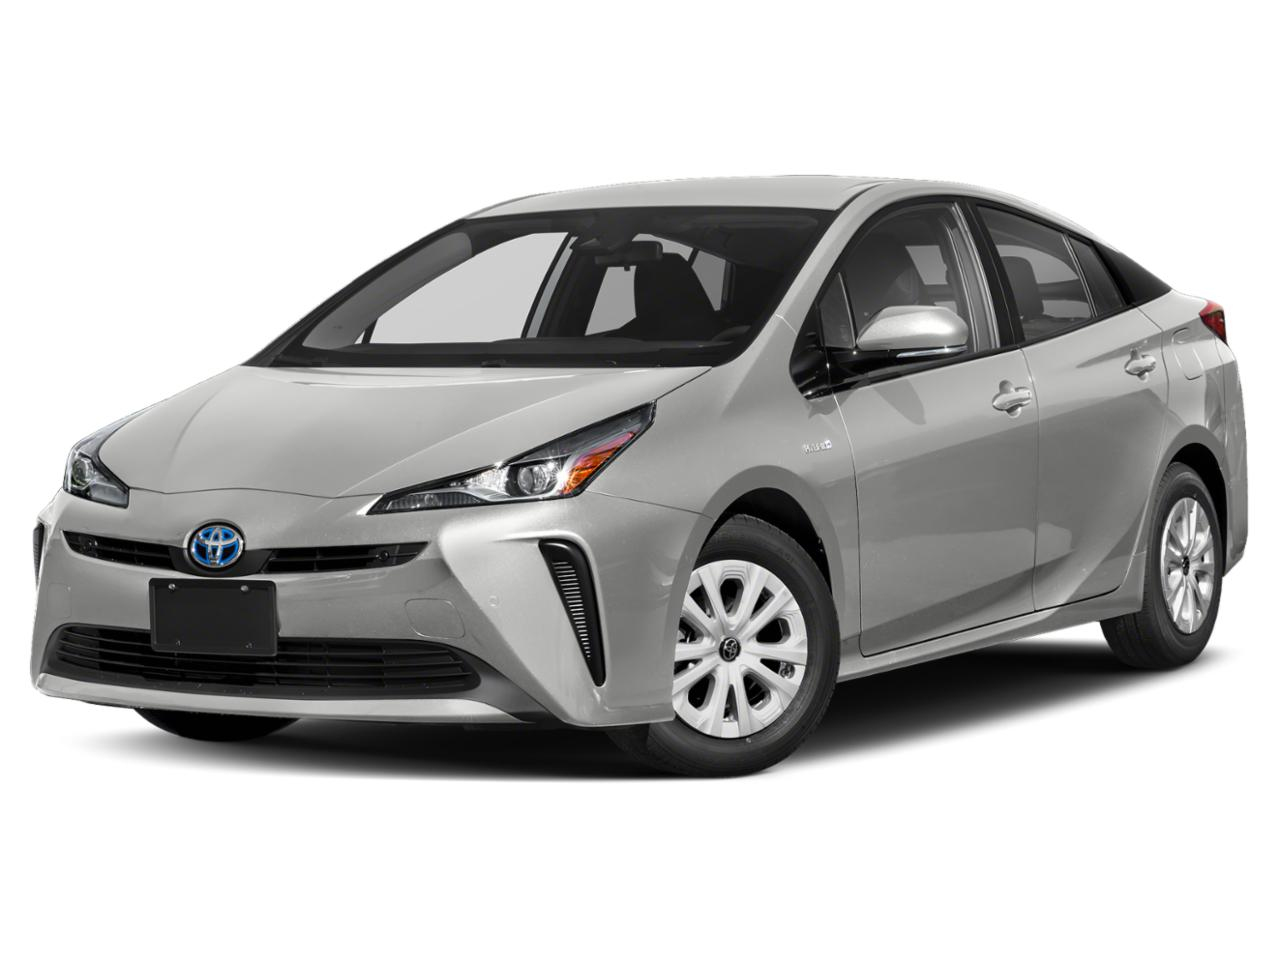 2021 Toyota Prius Vehicle Photo in Oshkosh, WI 54904